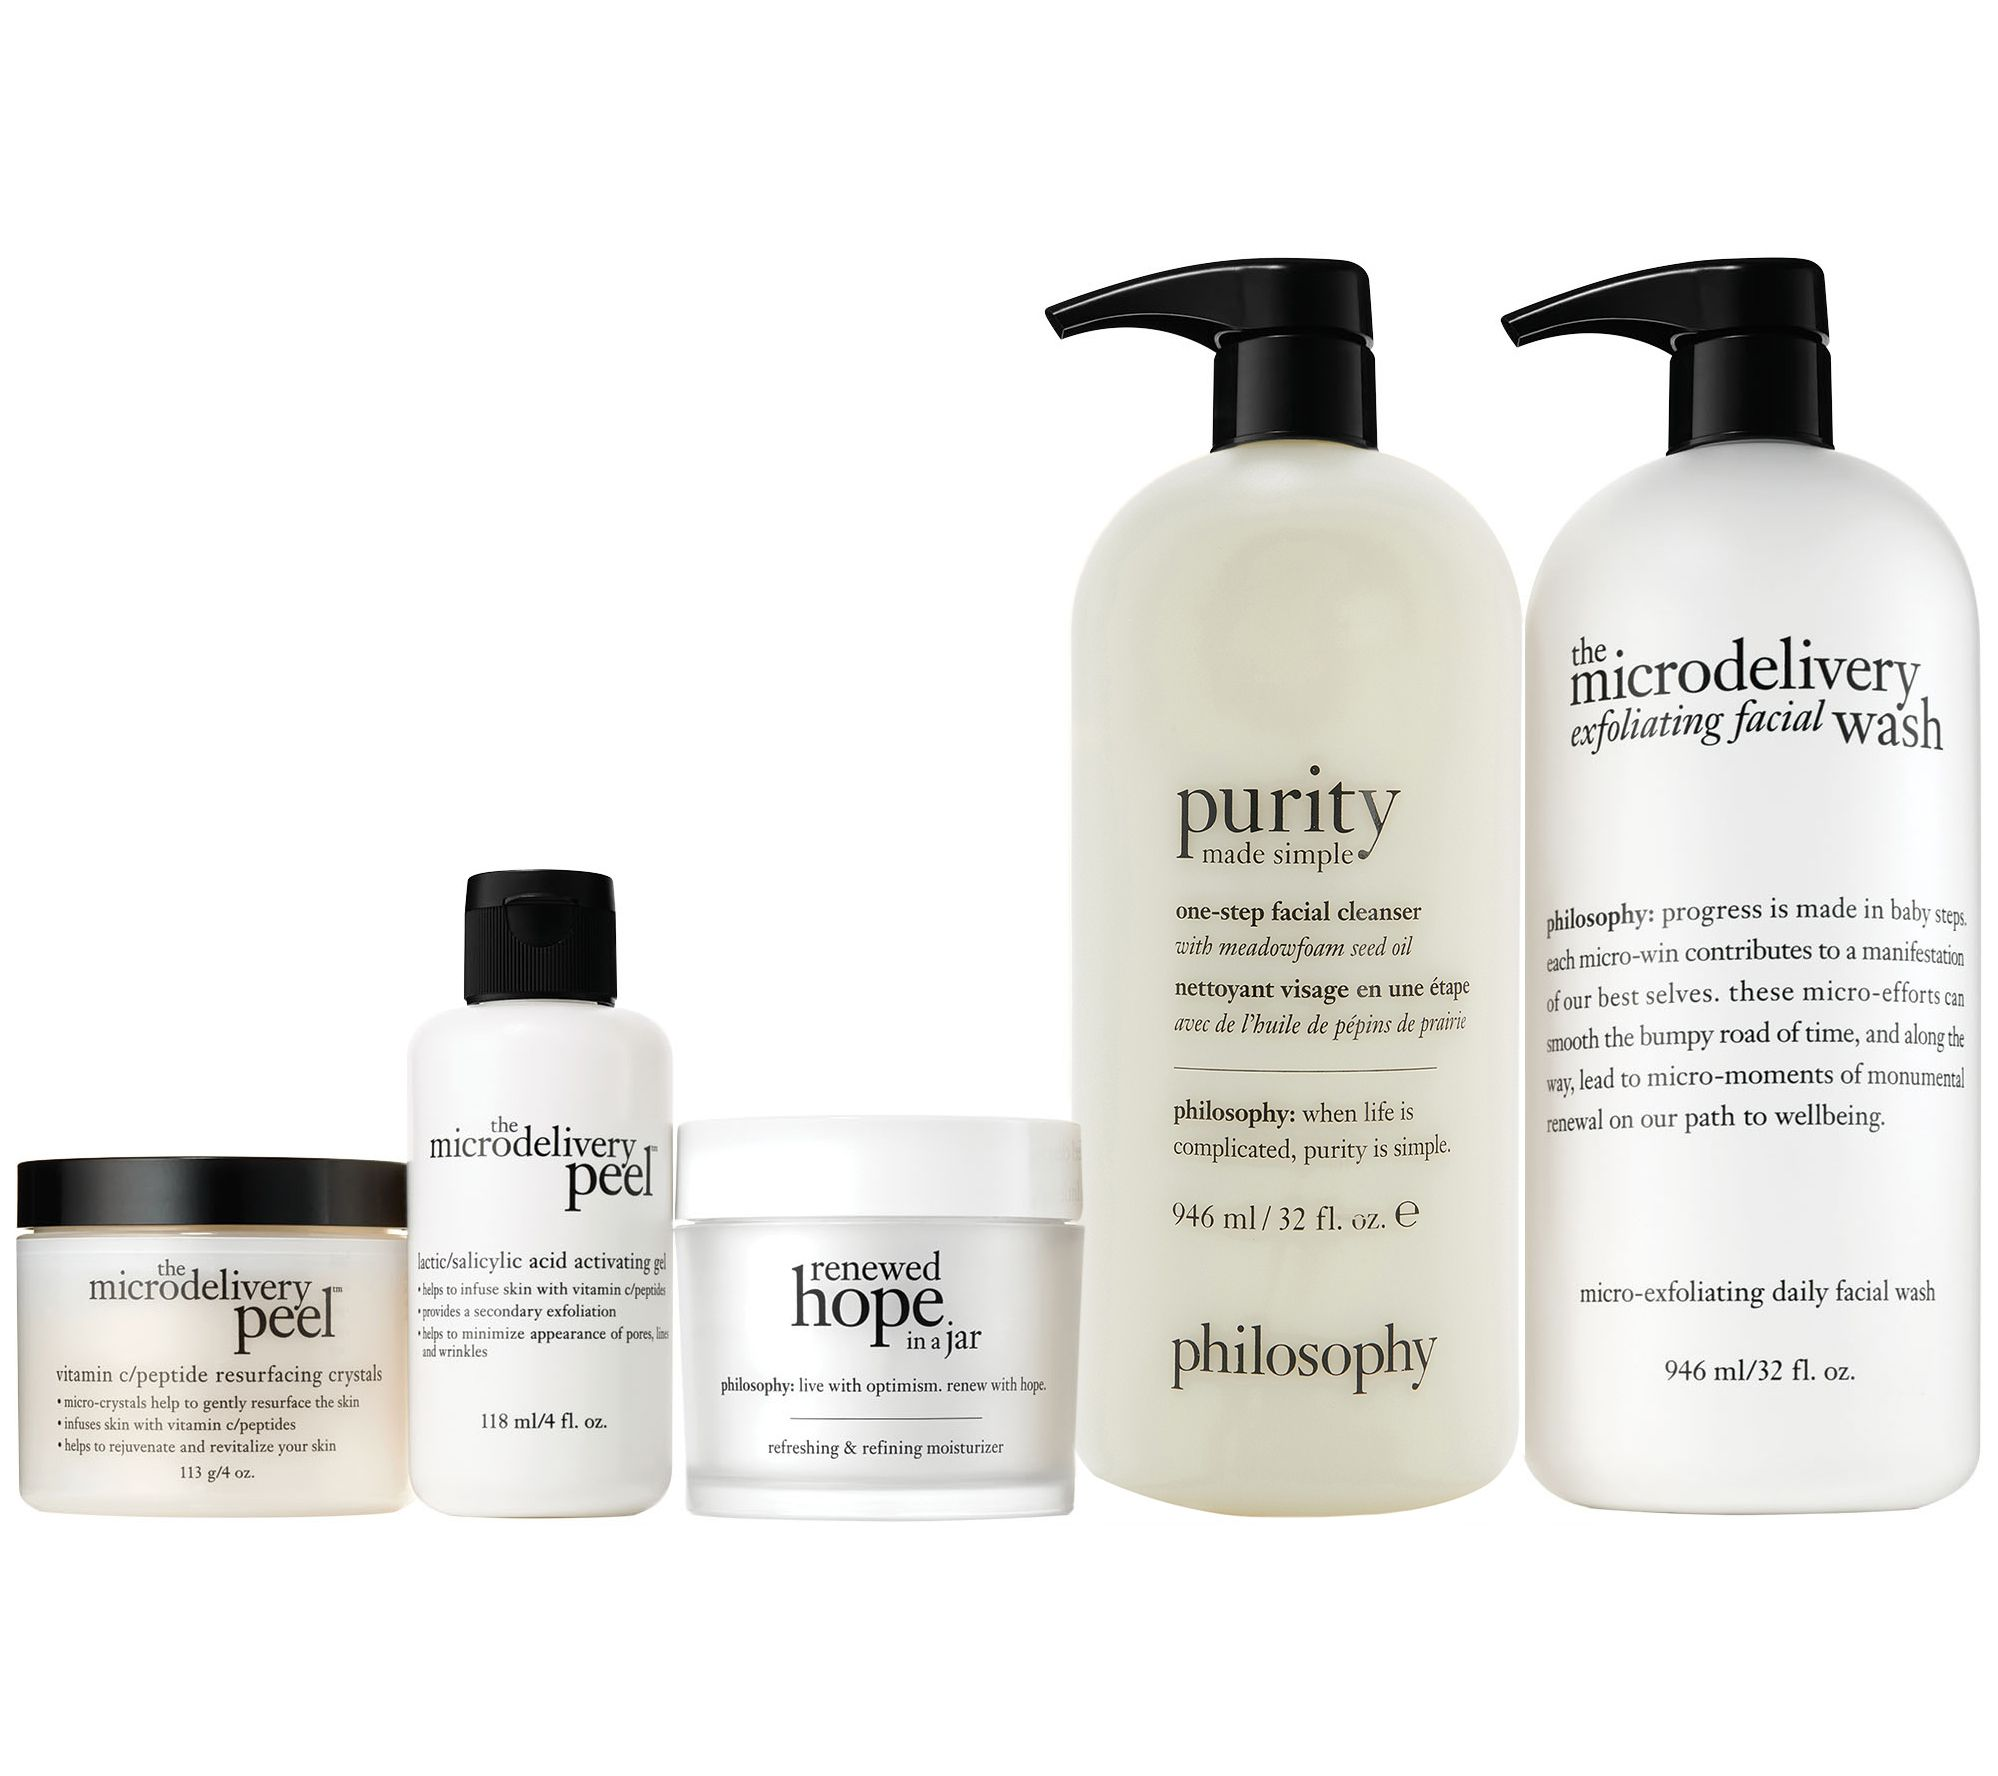 Save $30 on this philosophy skincare kit